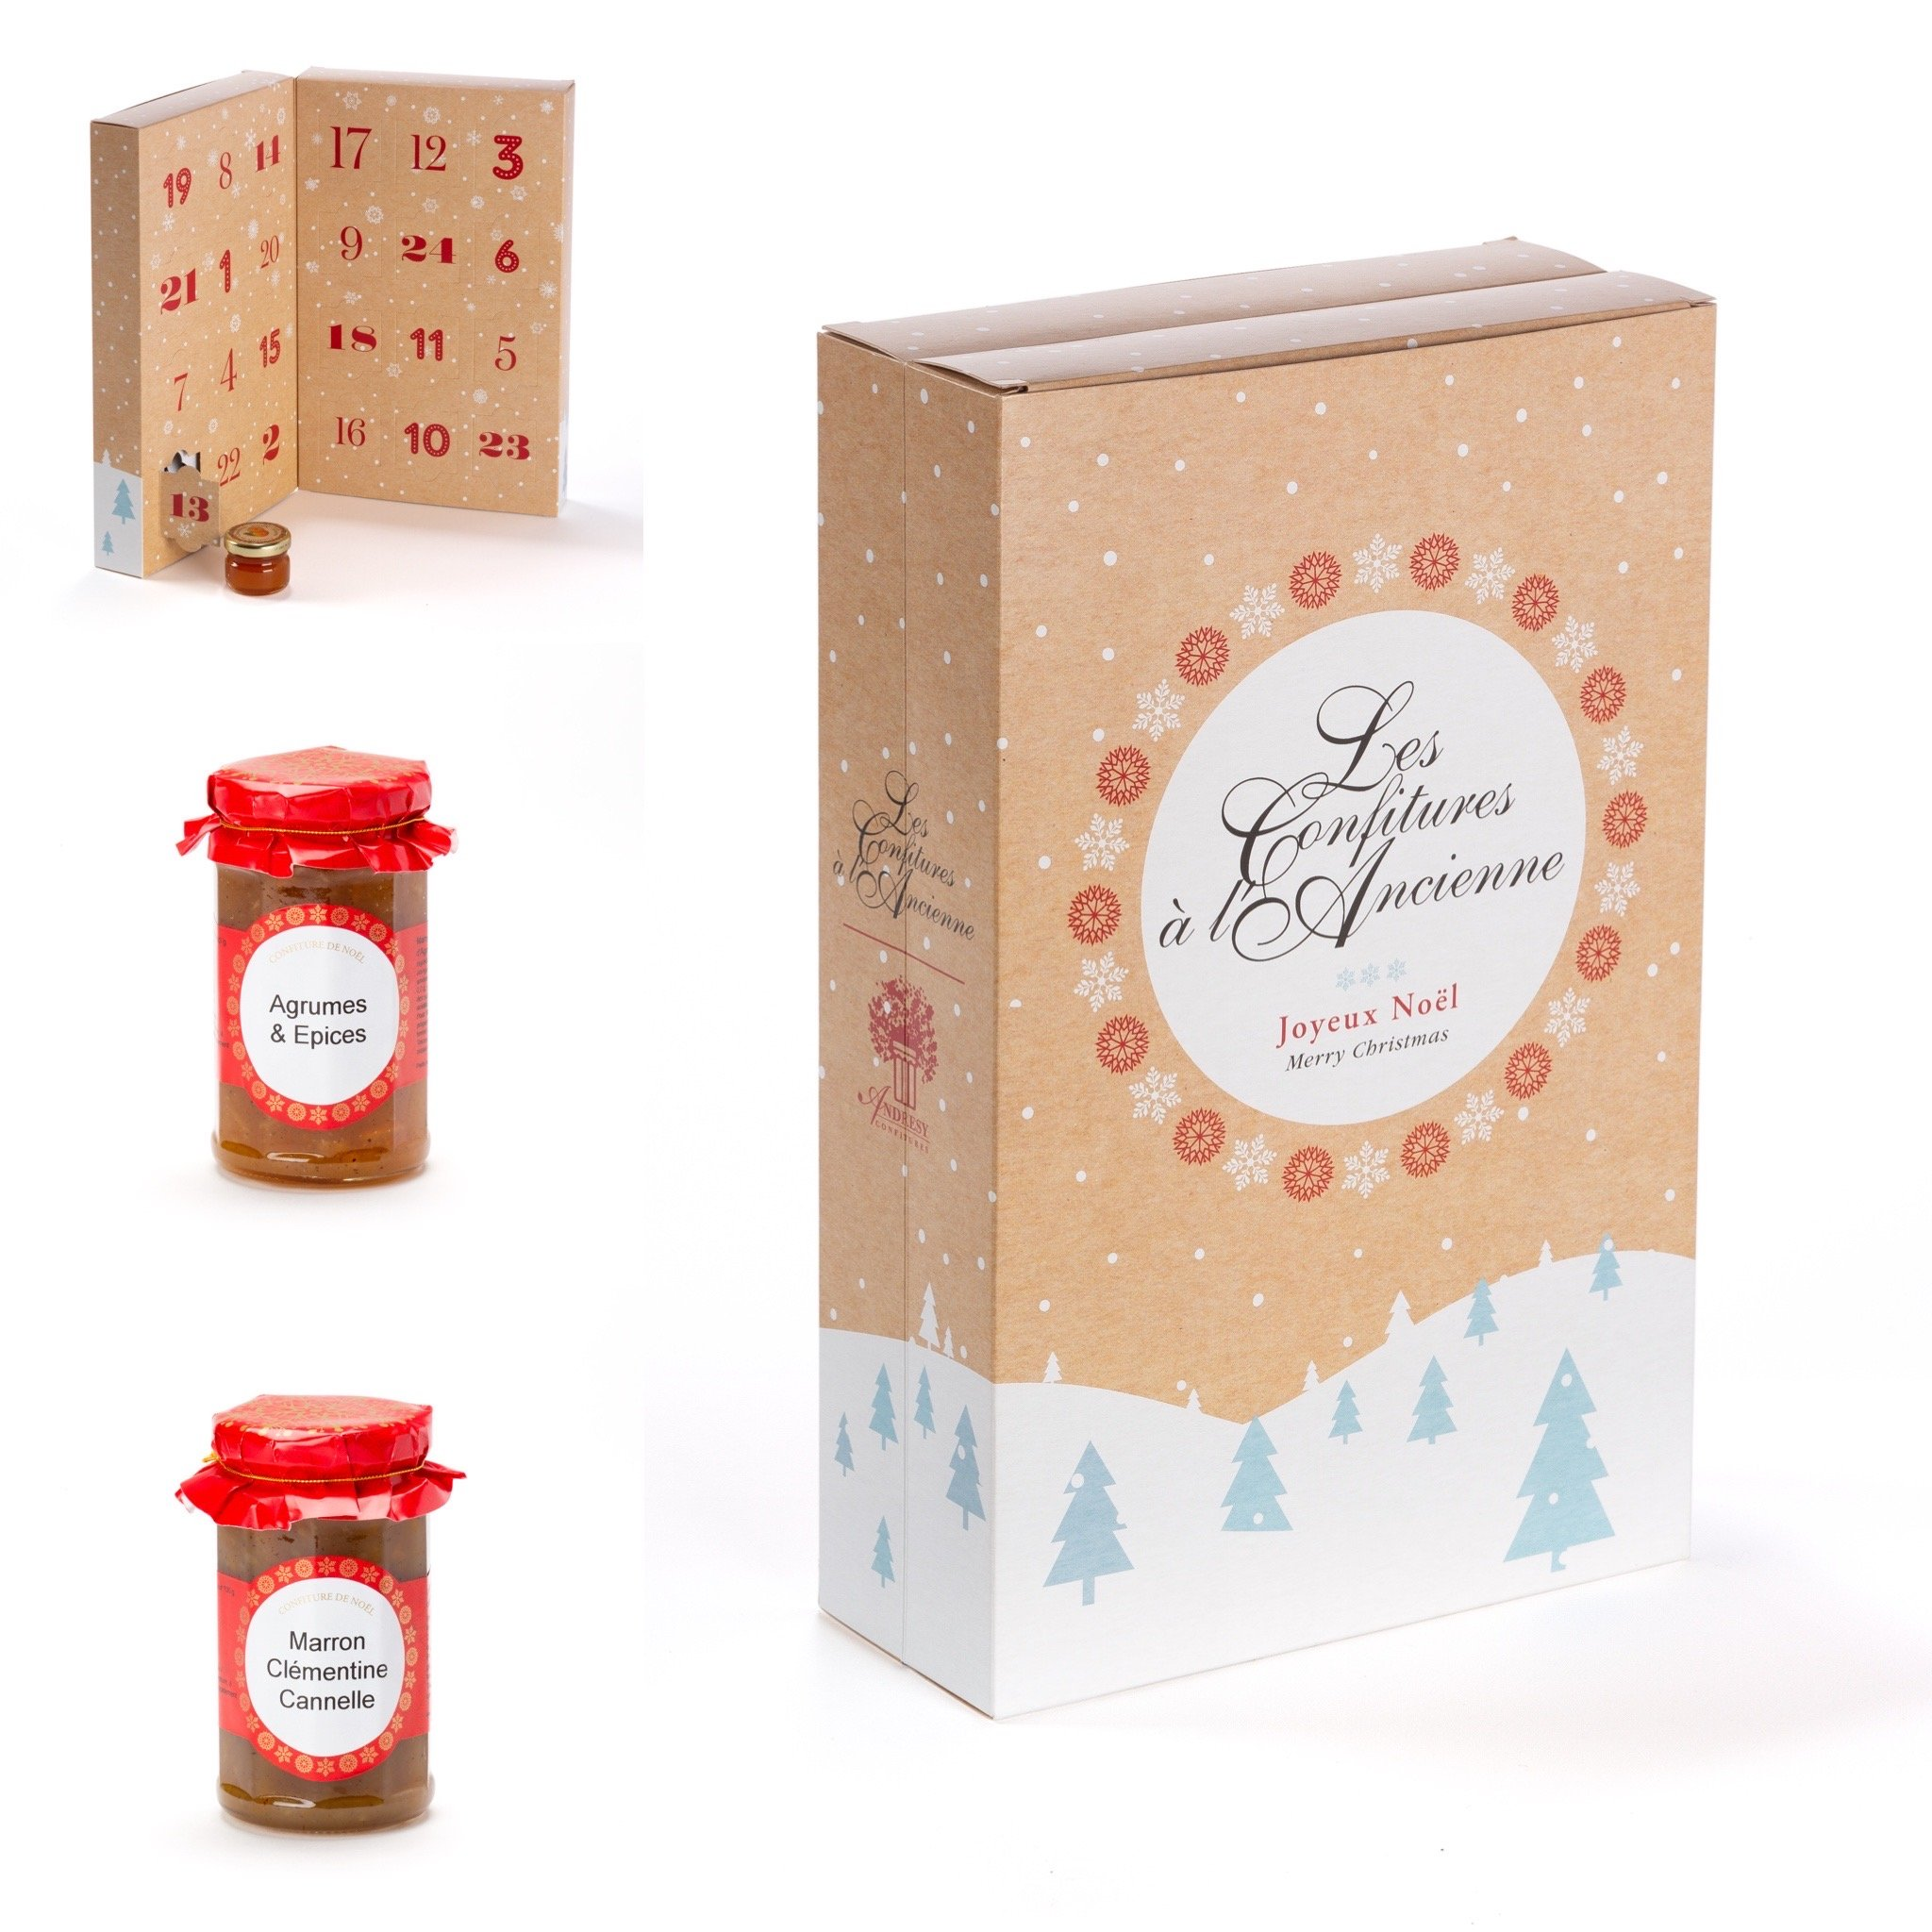 Christmas marmalade and jam avent calendar by Andresy Confitures